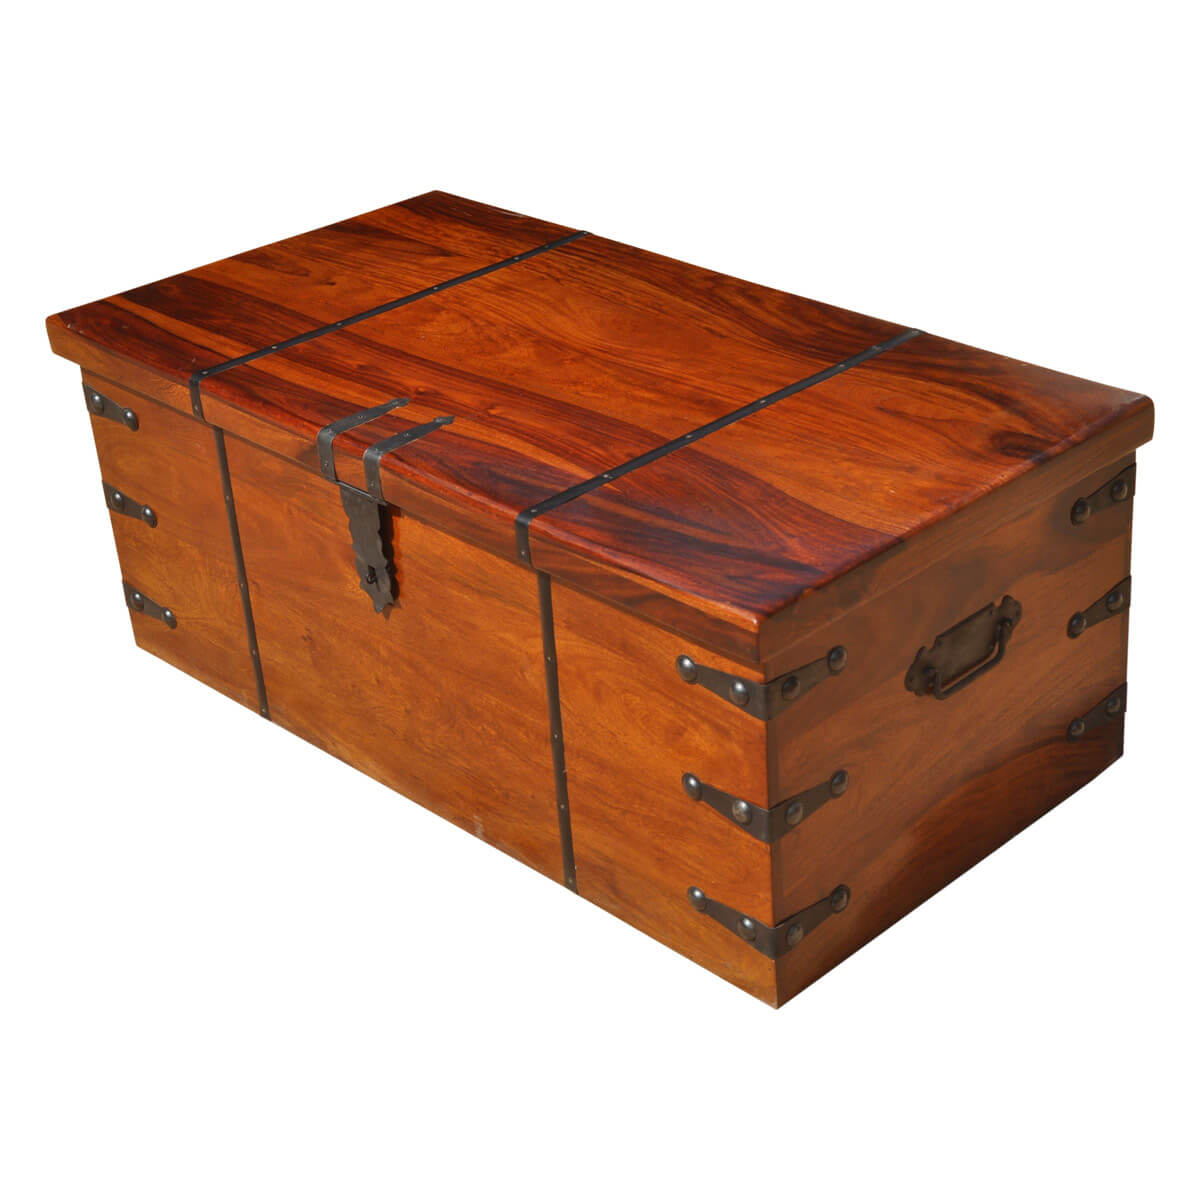 Large solid wood with metal accents storage trunk coffee table chest Coffee table chest with storage